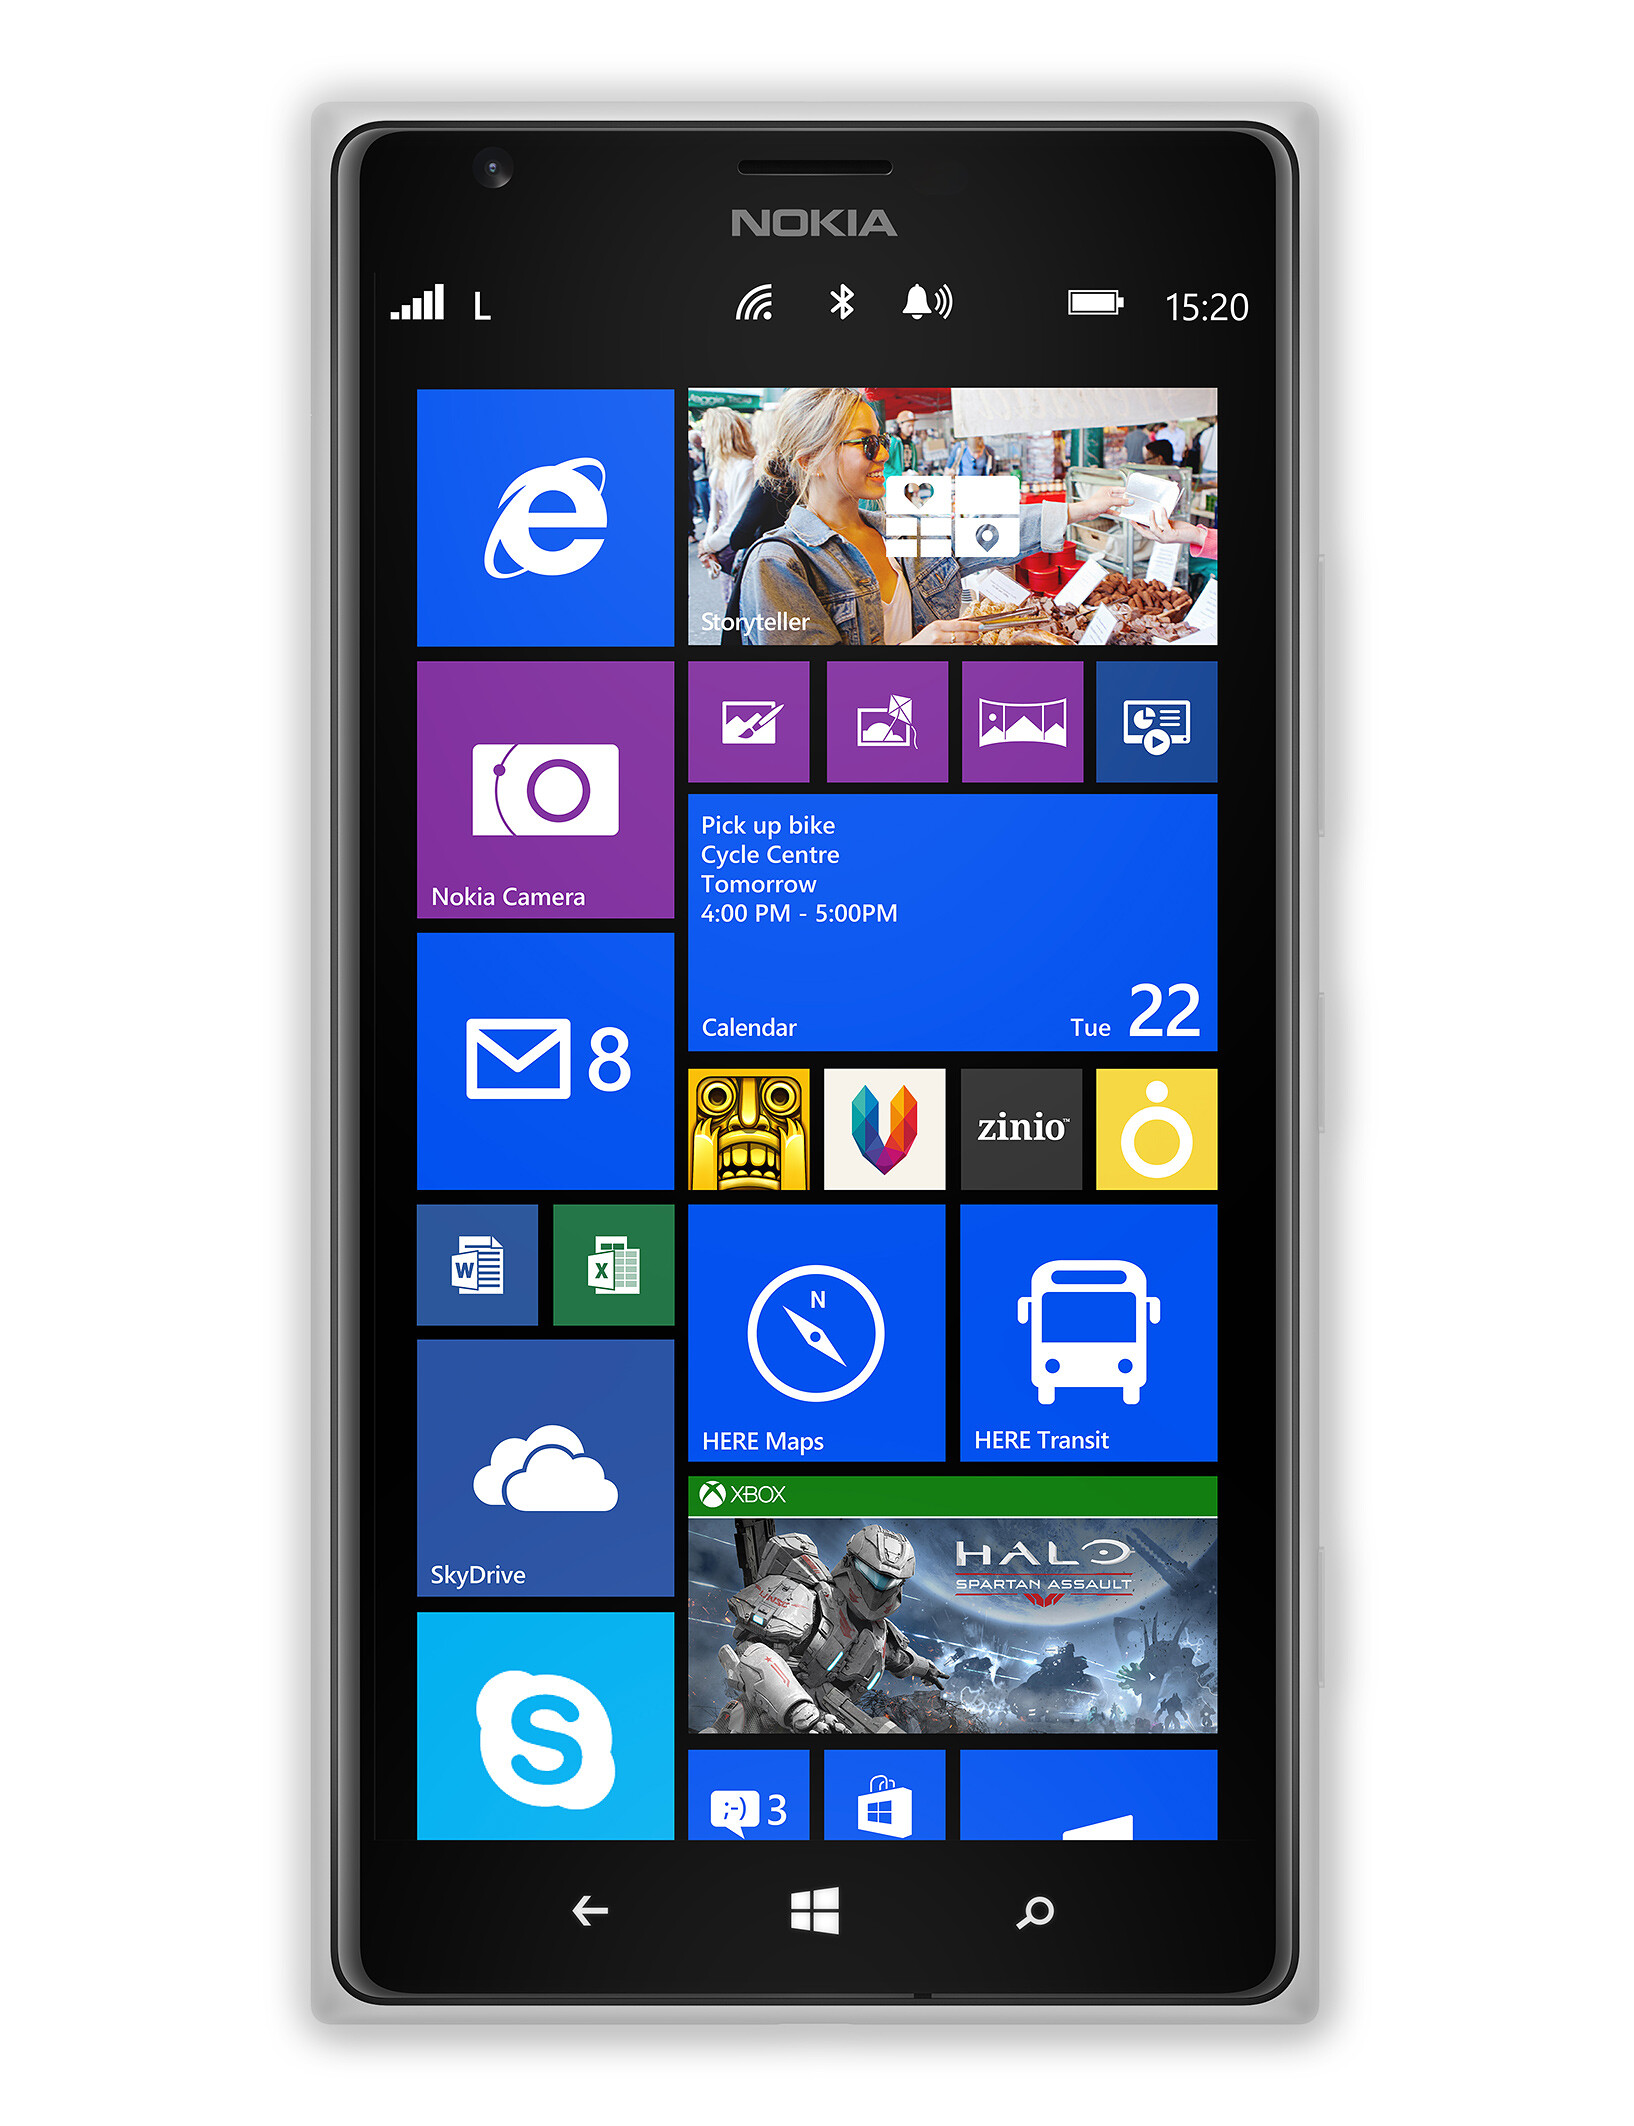 Nokia nokia lumia 900 phone case : All Nokia Smart Phones Nokia lumia 1520